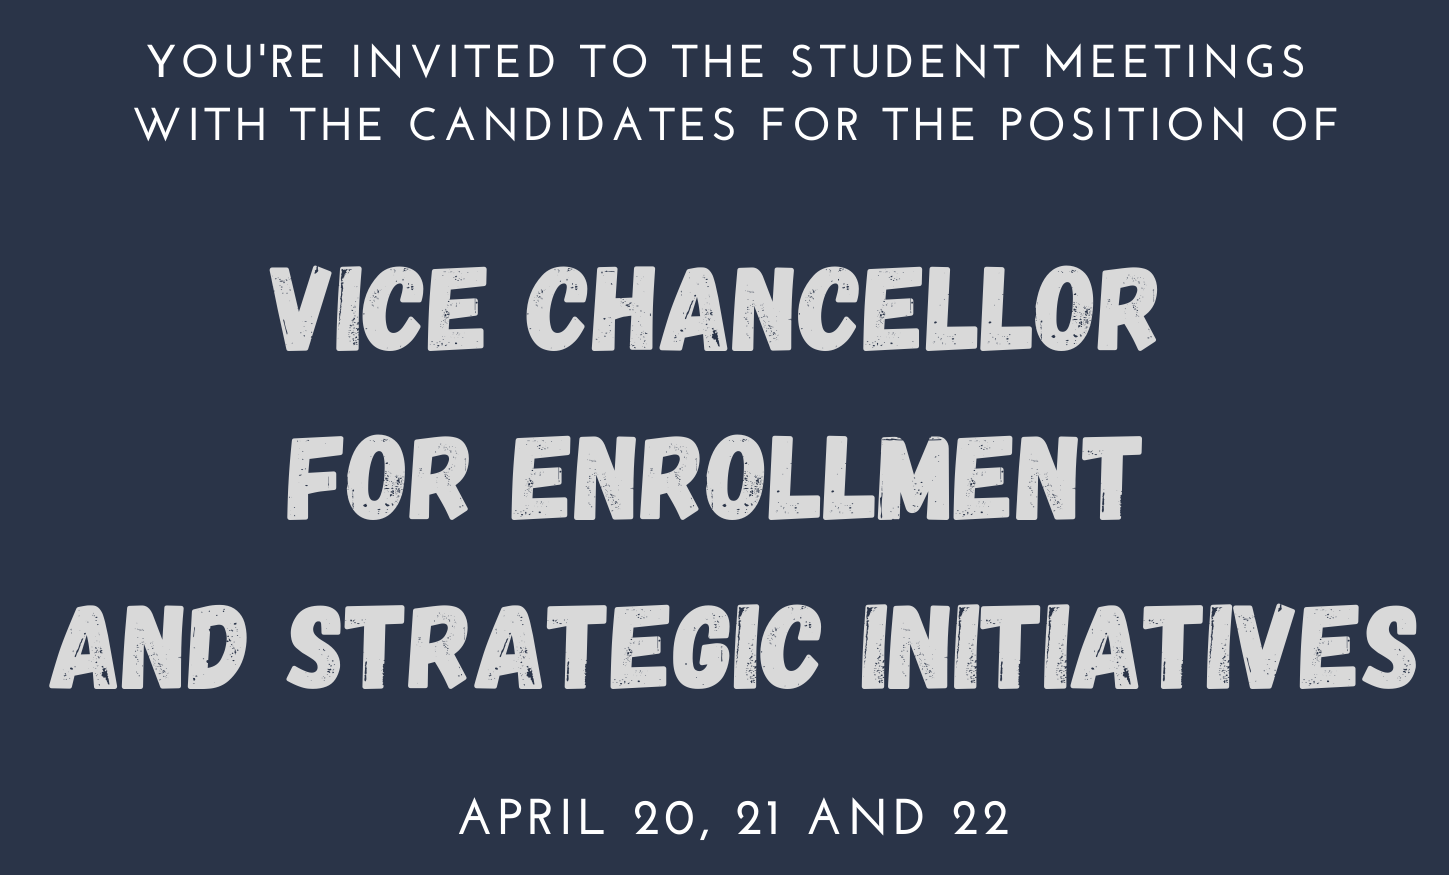 Vice Chancellor Candidates